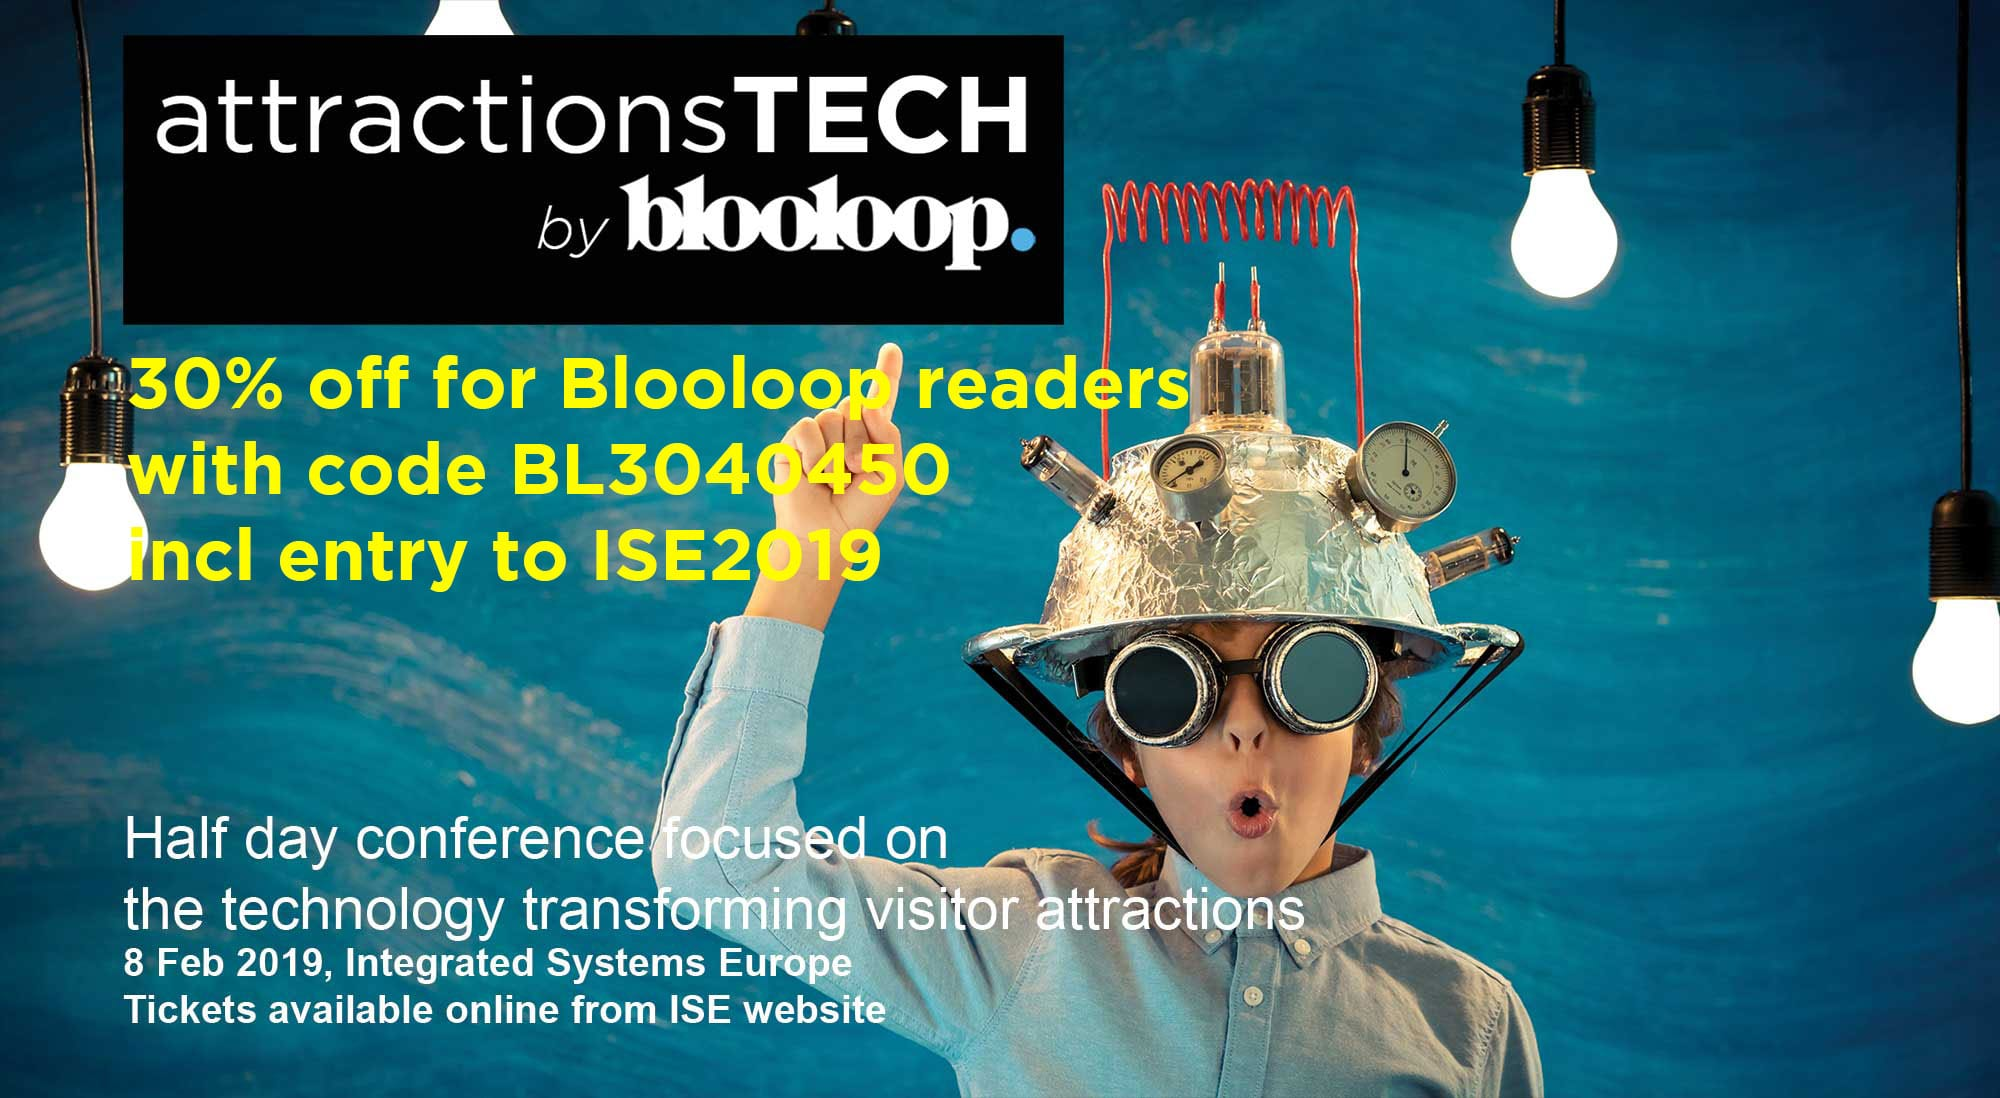 attractionsTECH by Blooloop at ISE